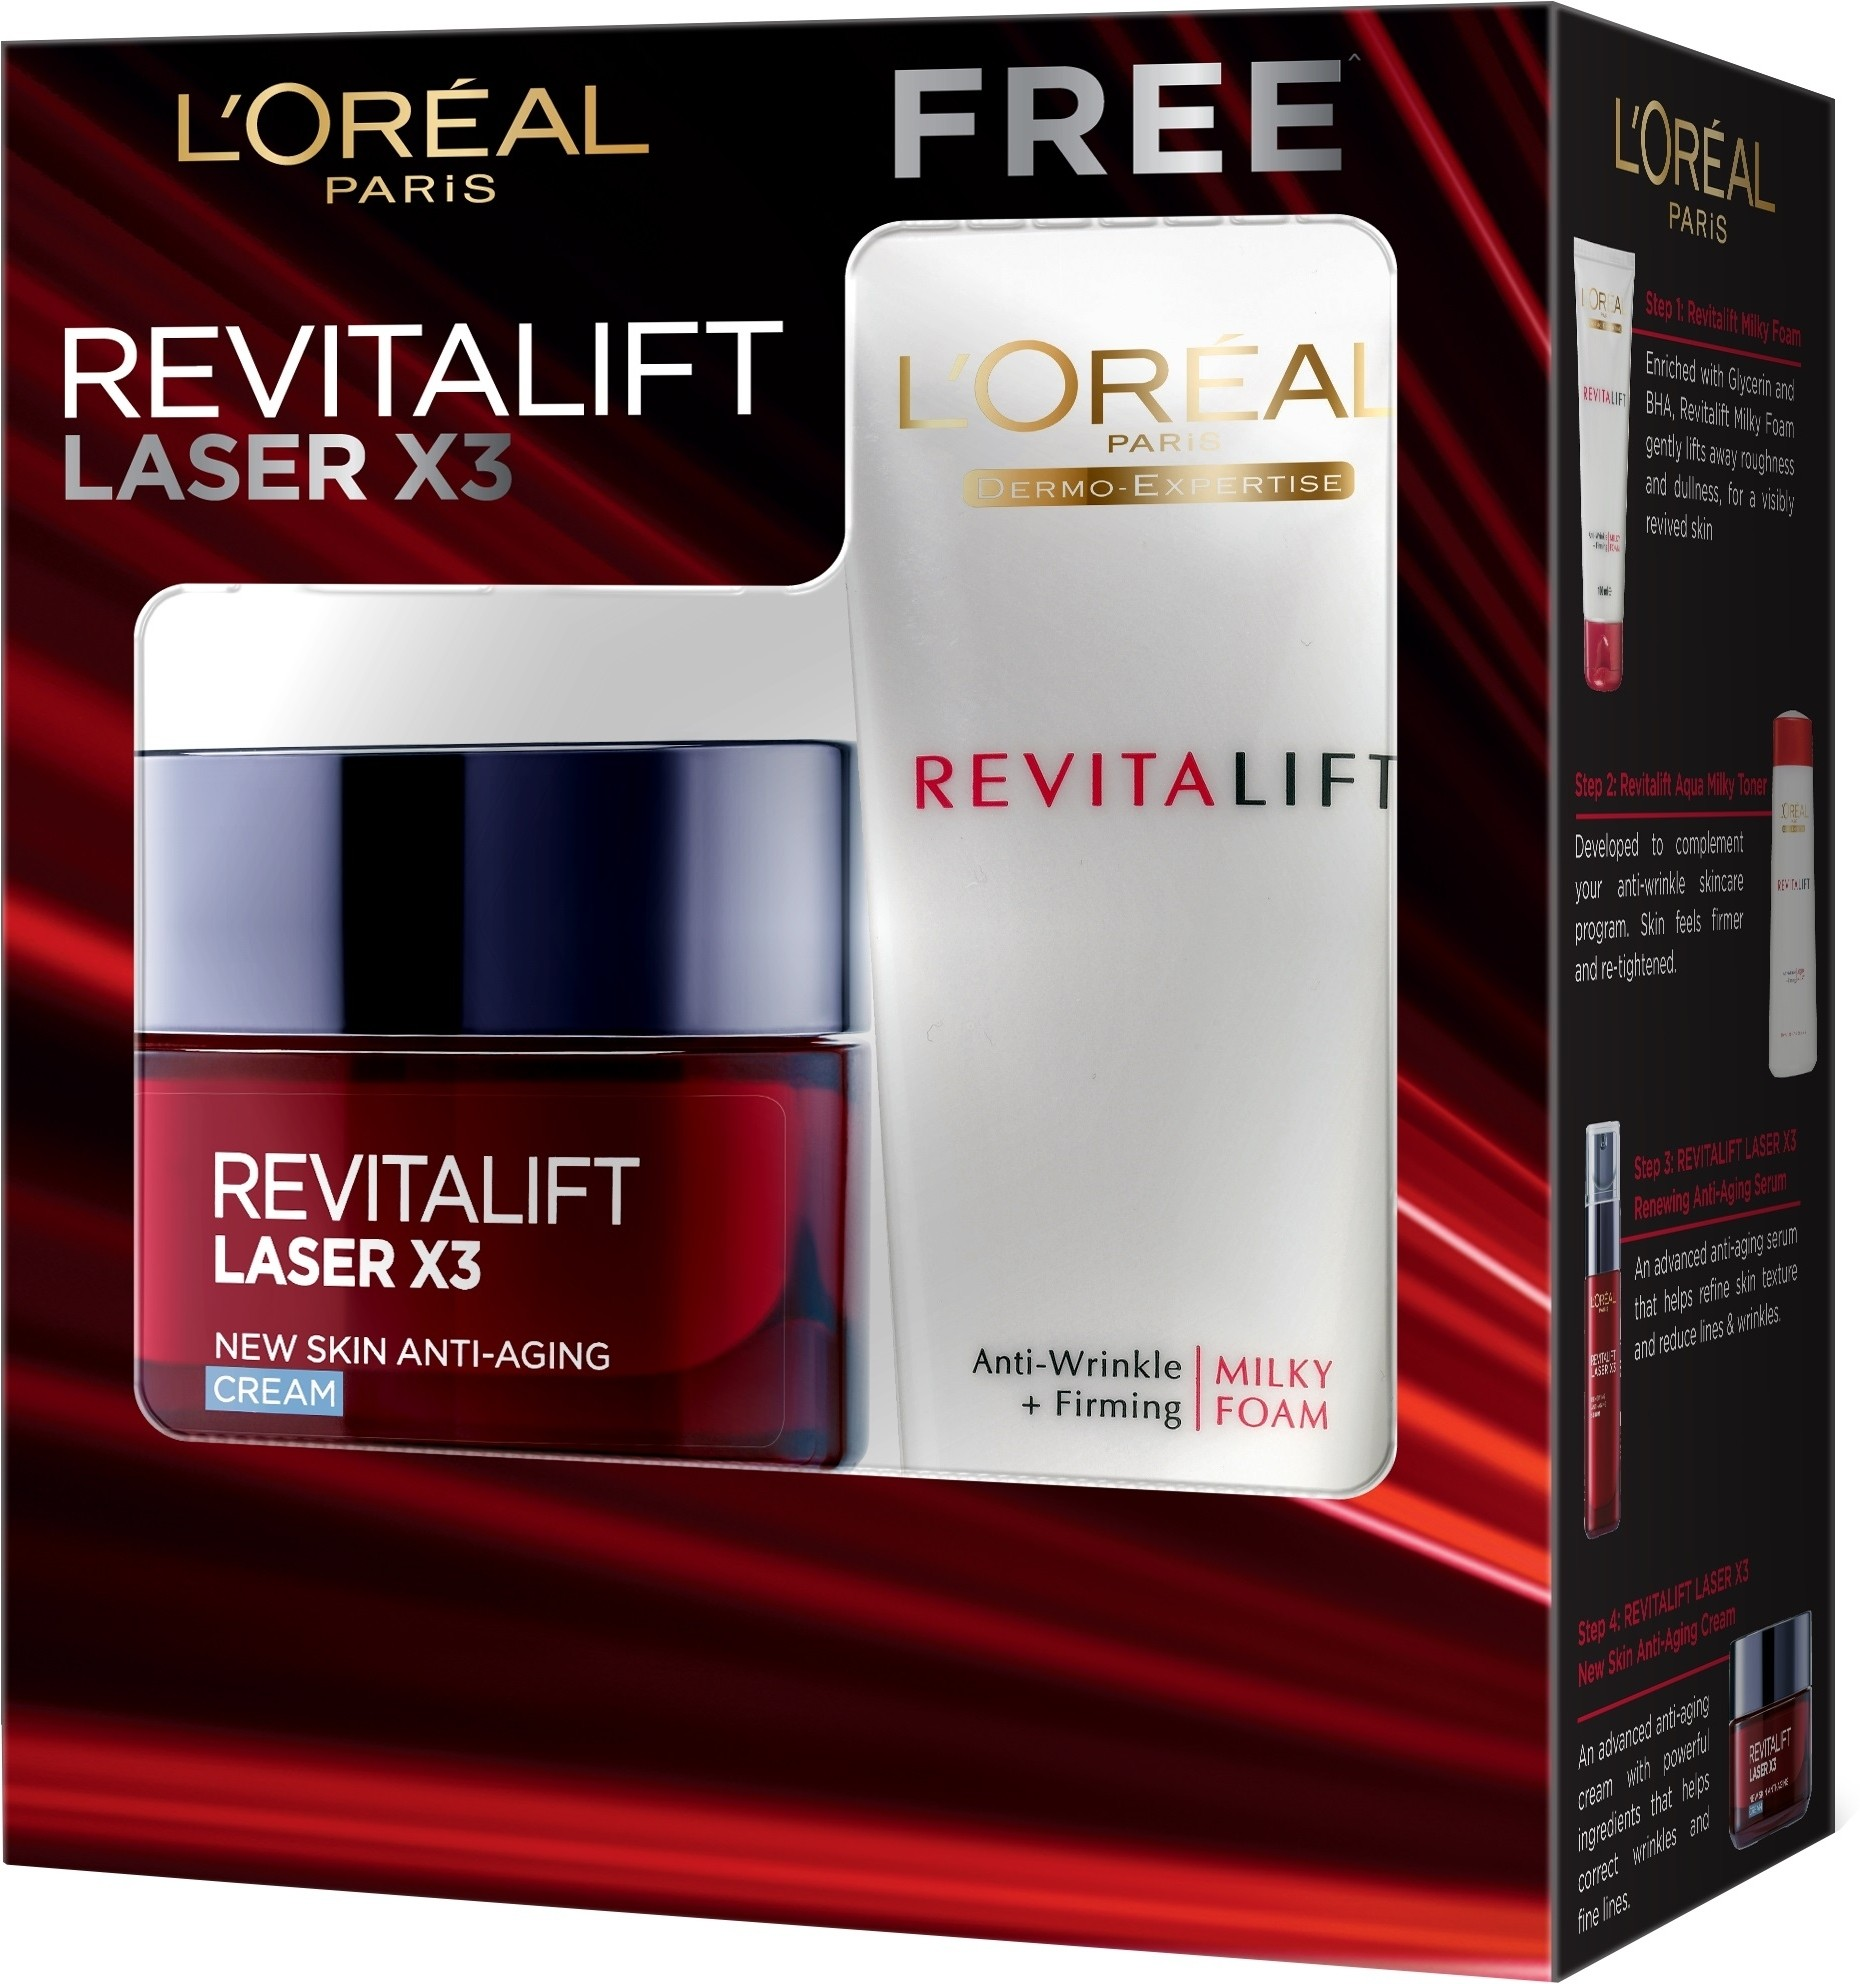 Loreal anti aging cream reviews - Moisturizer for eyes